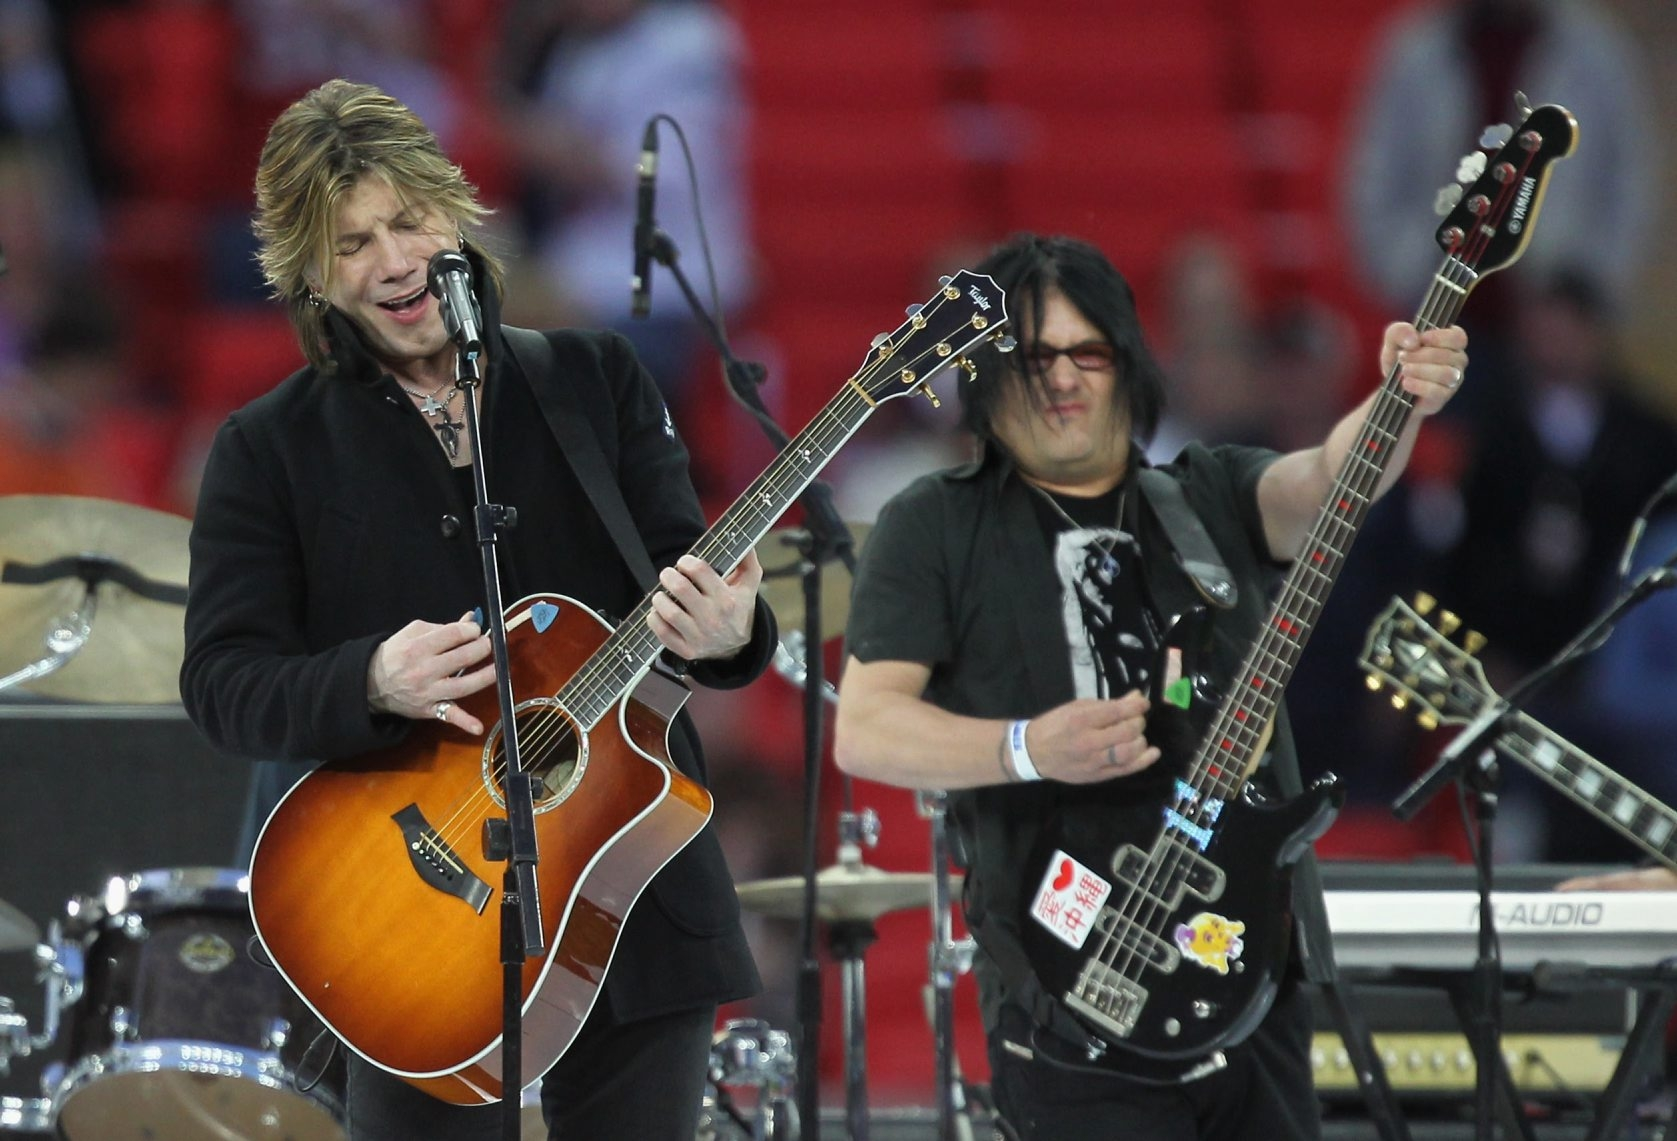 The Goo Goo Dolls are part of a benefit concert for the Institute for Autism Research at Canisius College.